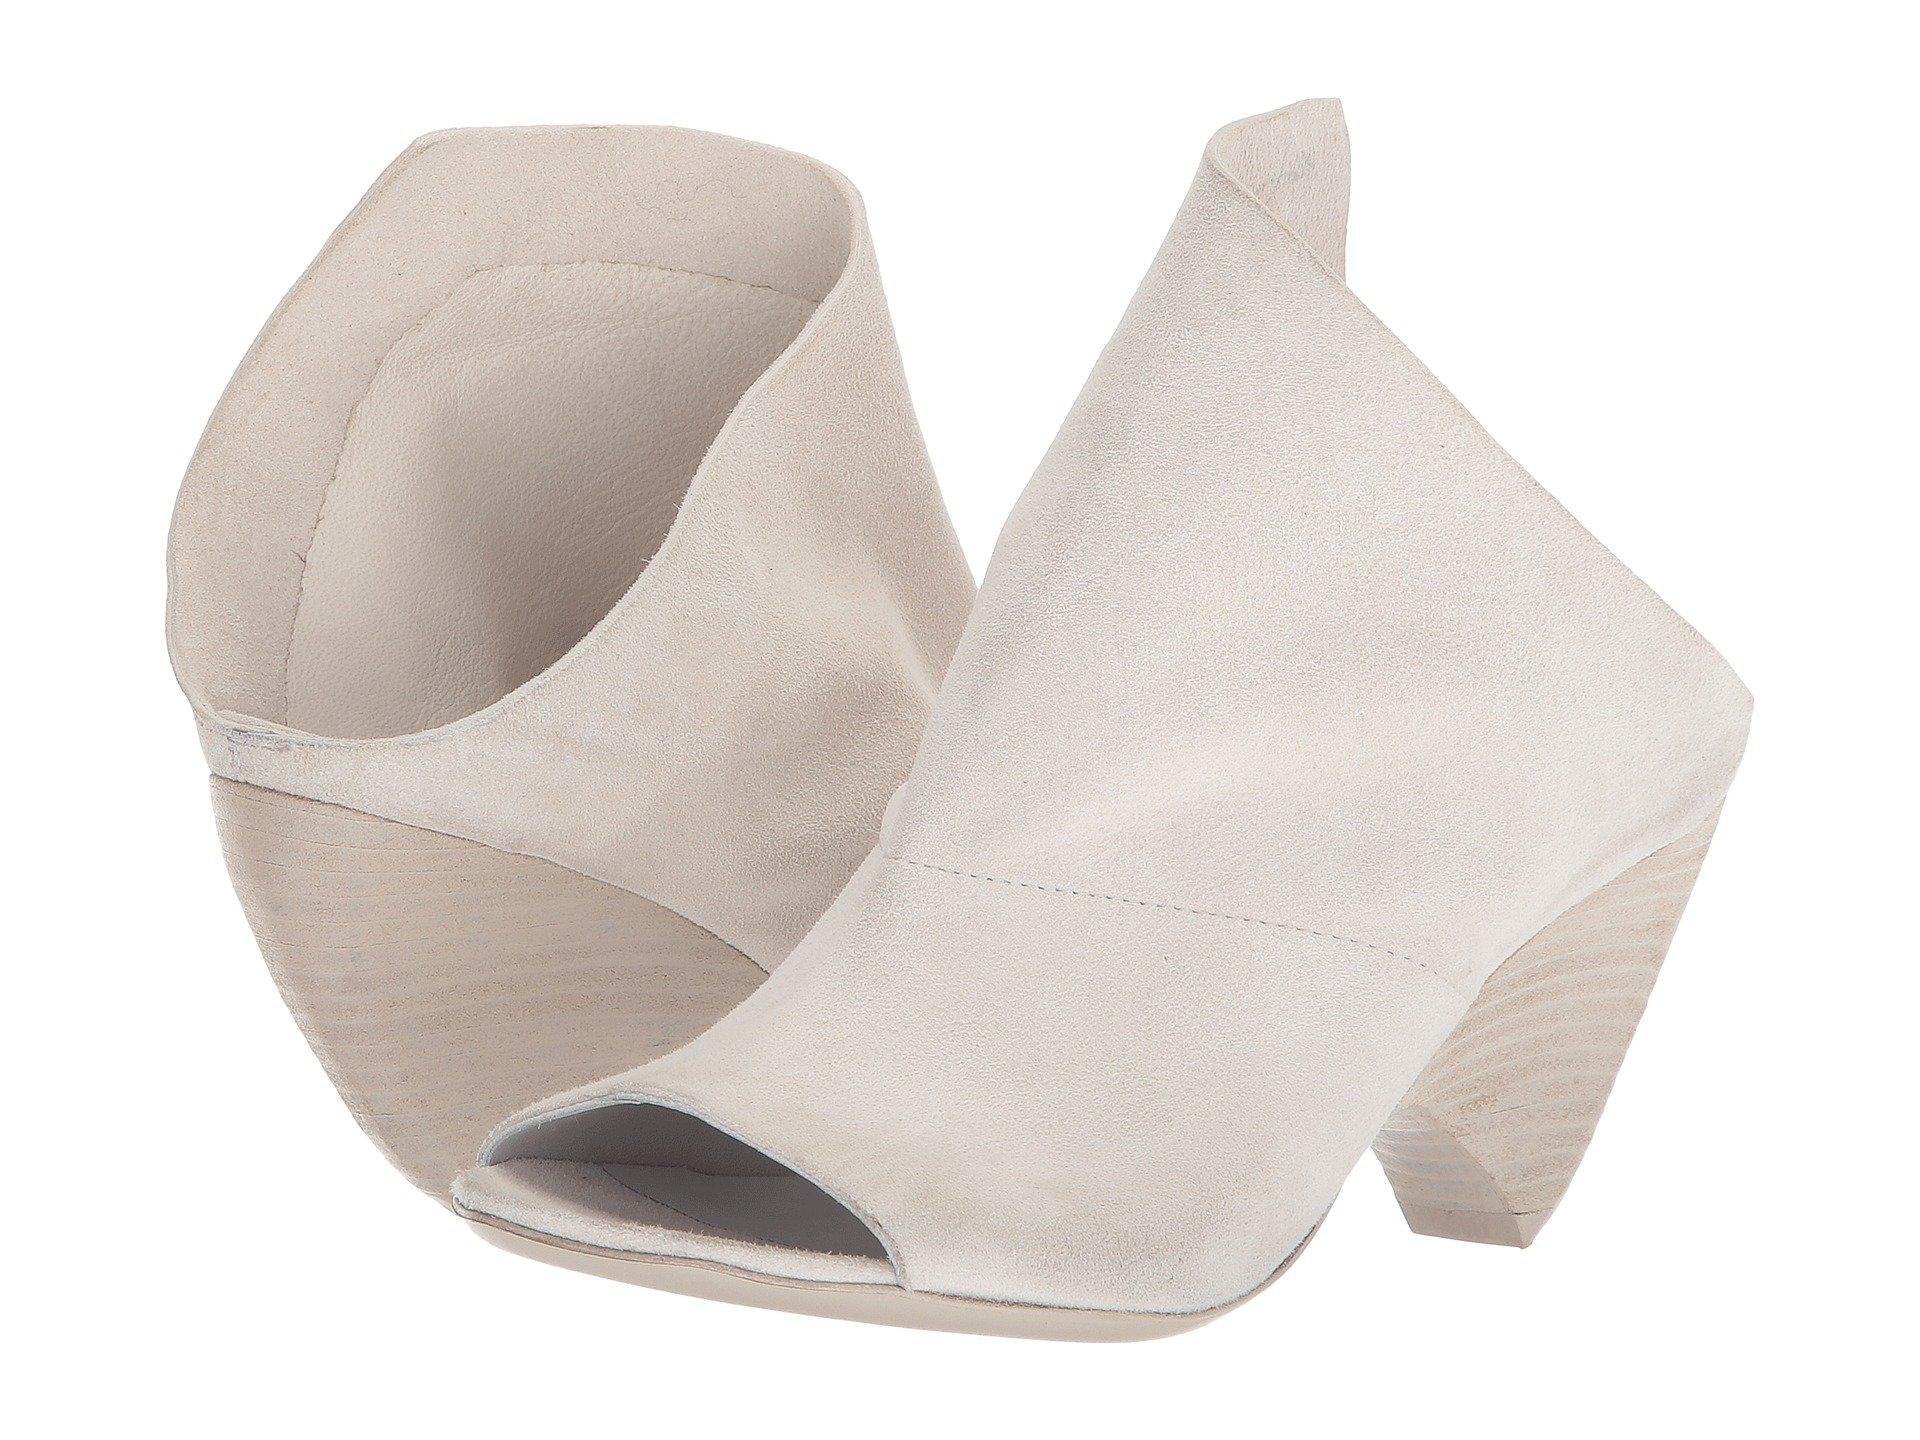 MarsellOpen Toe Ankle Wedge 2rYAU0mNBy